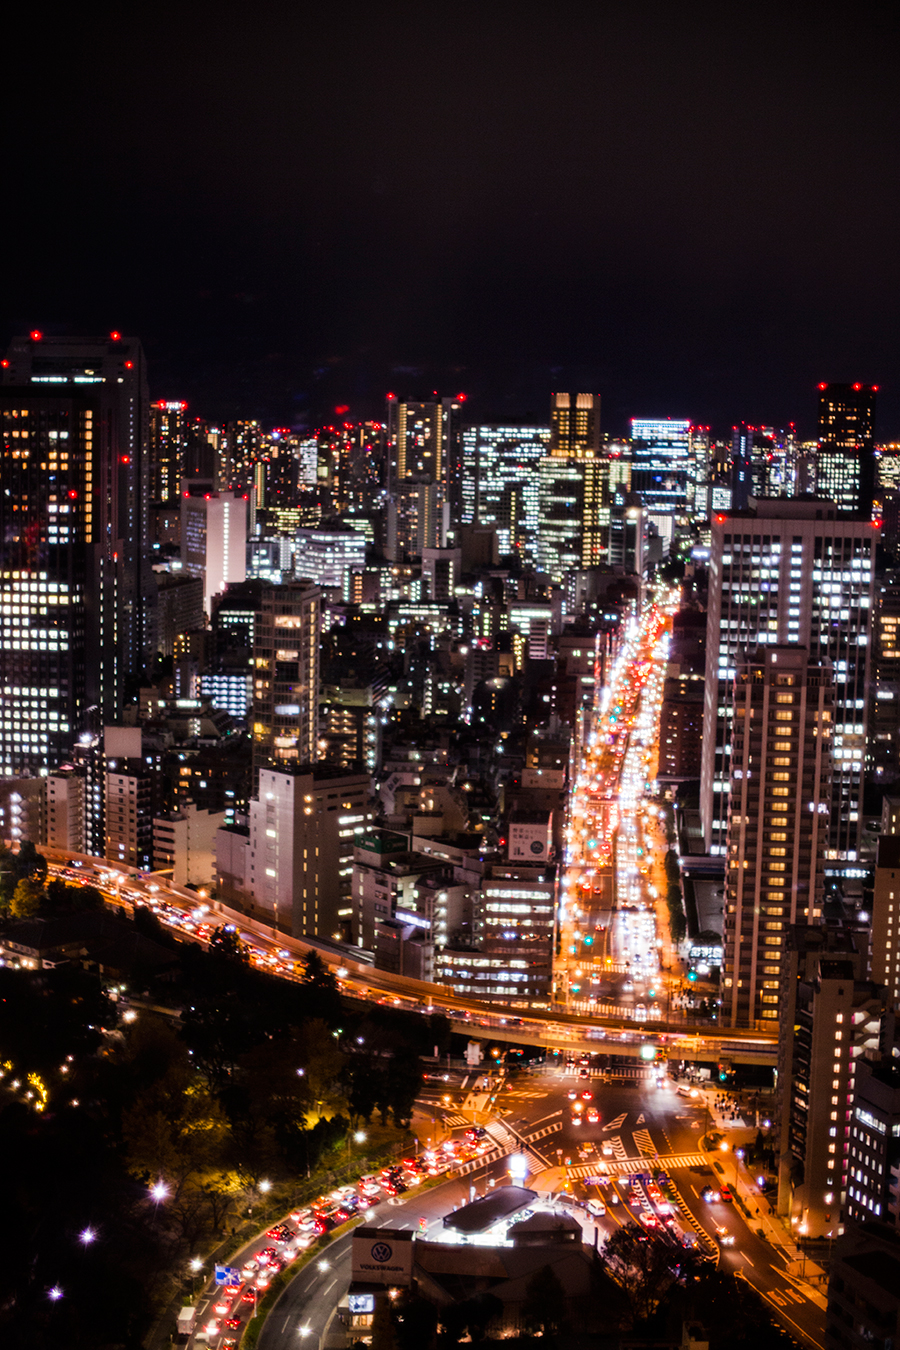 Busy roads in the night cityscape from the Tokyo Tower Observatory.